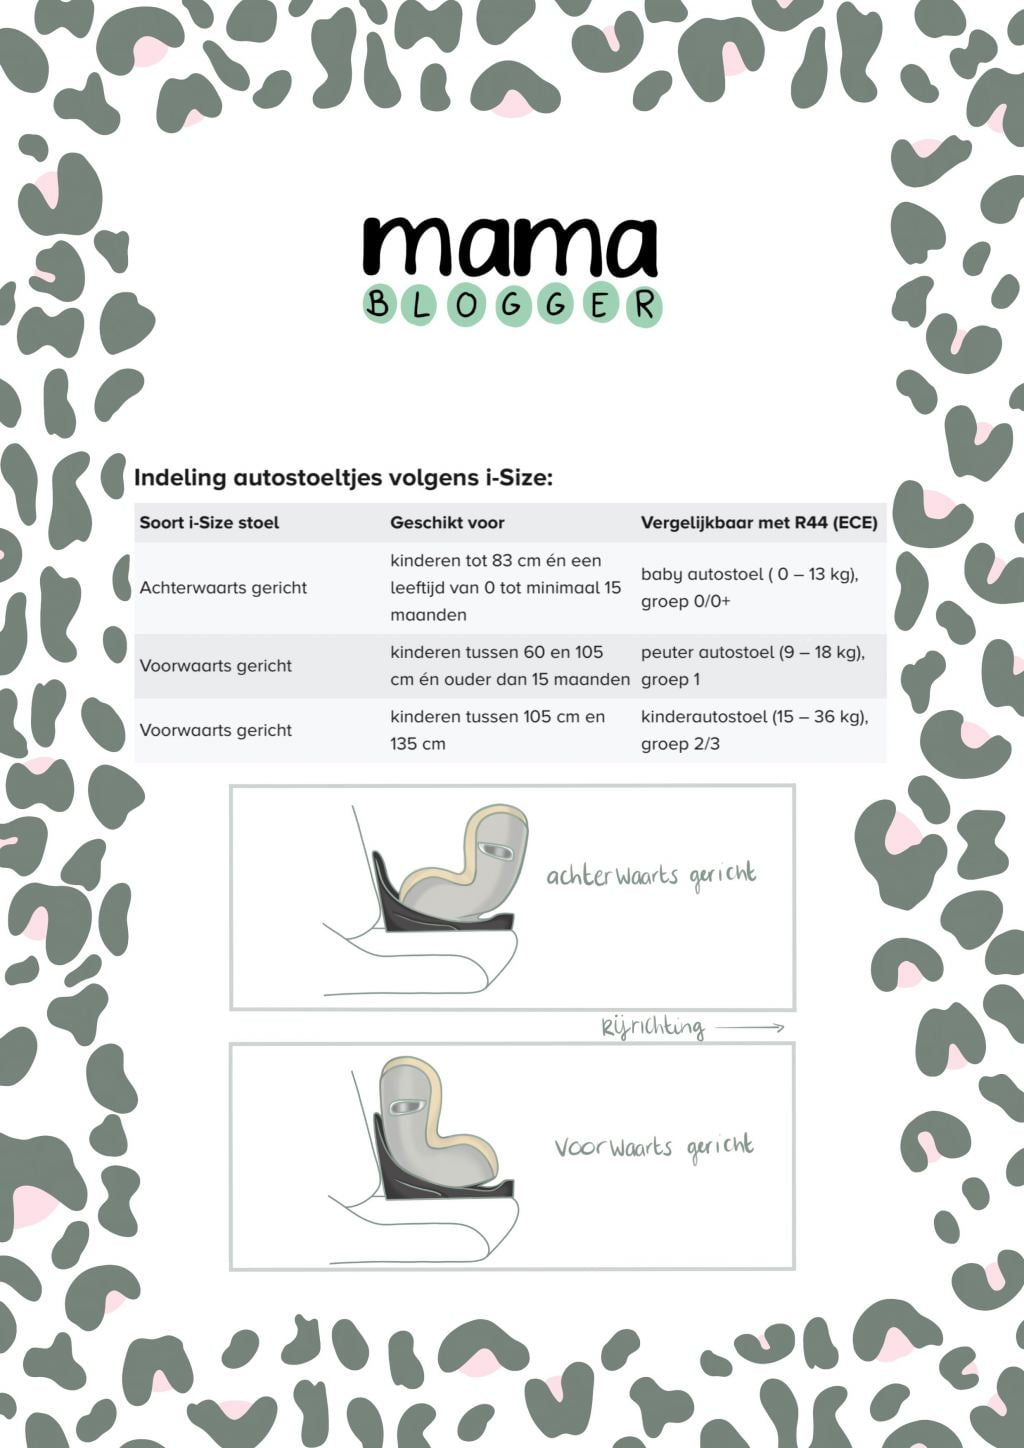 Cybex_autostoel_mamablogger_i-Size_nieuwe veiligheidsnormen_mamablogger_review_